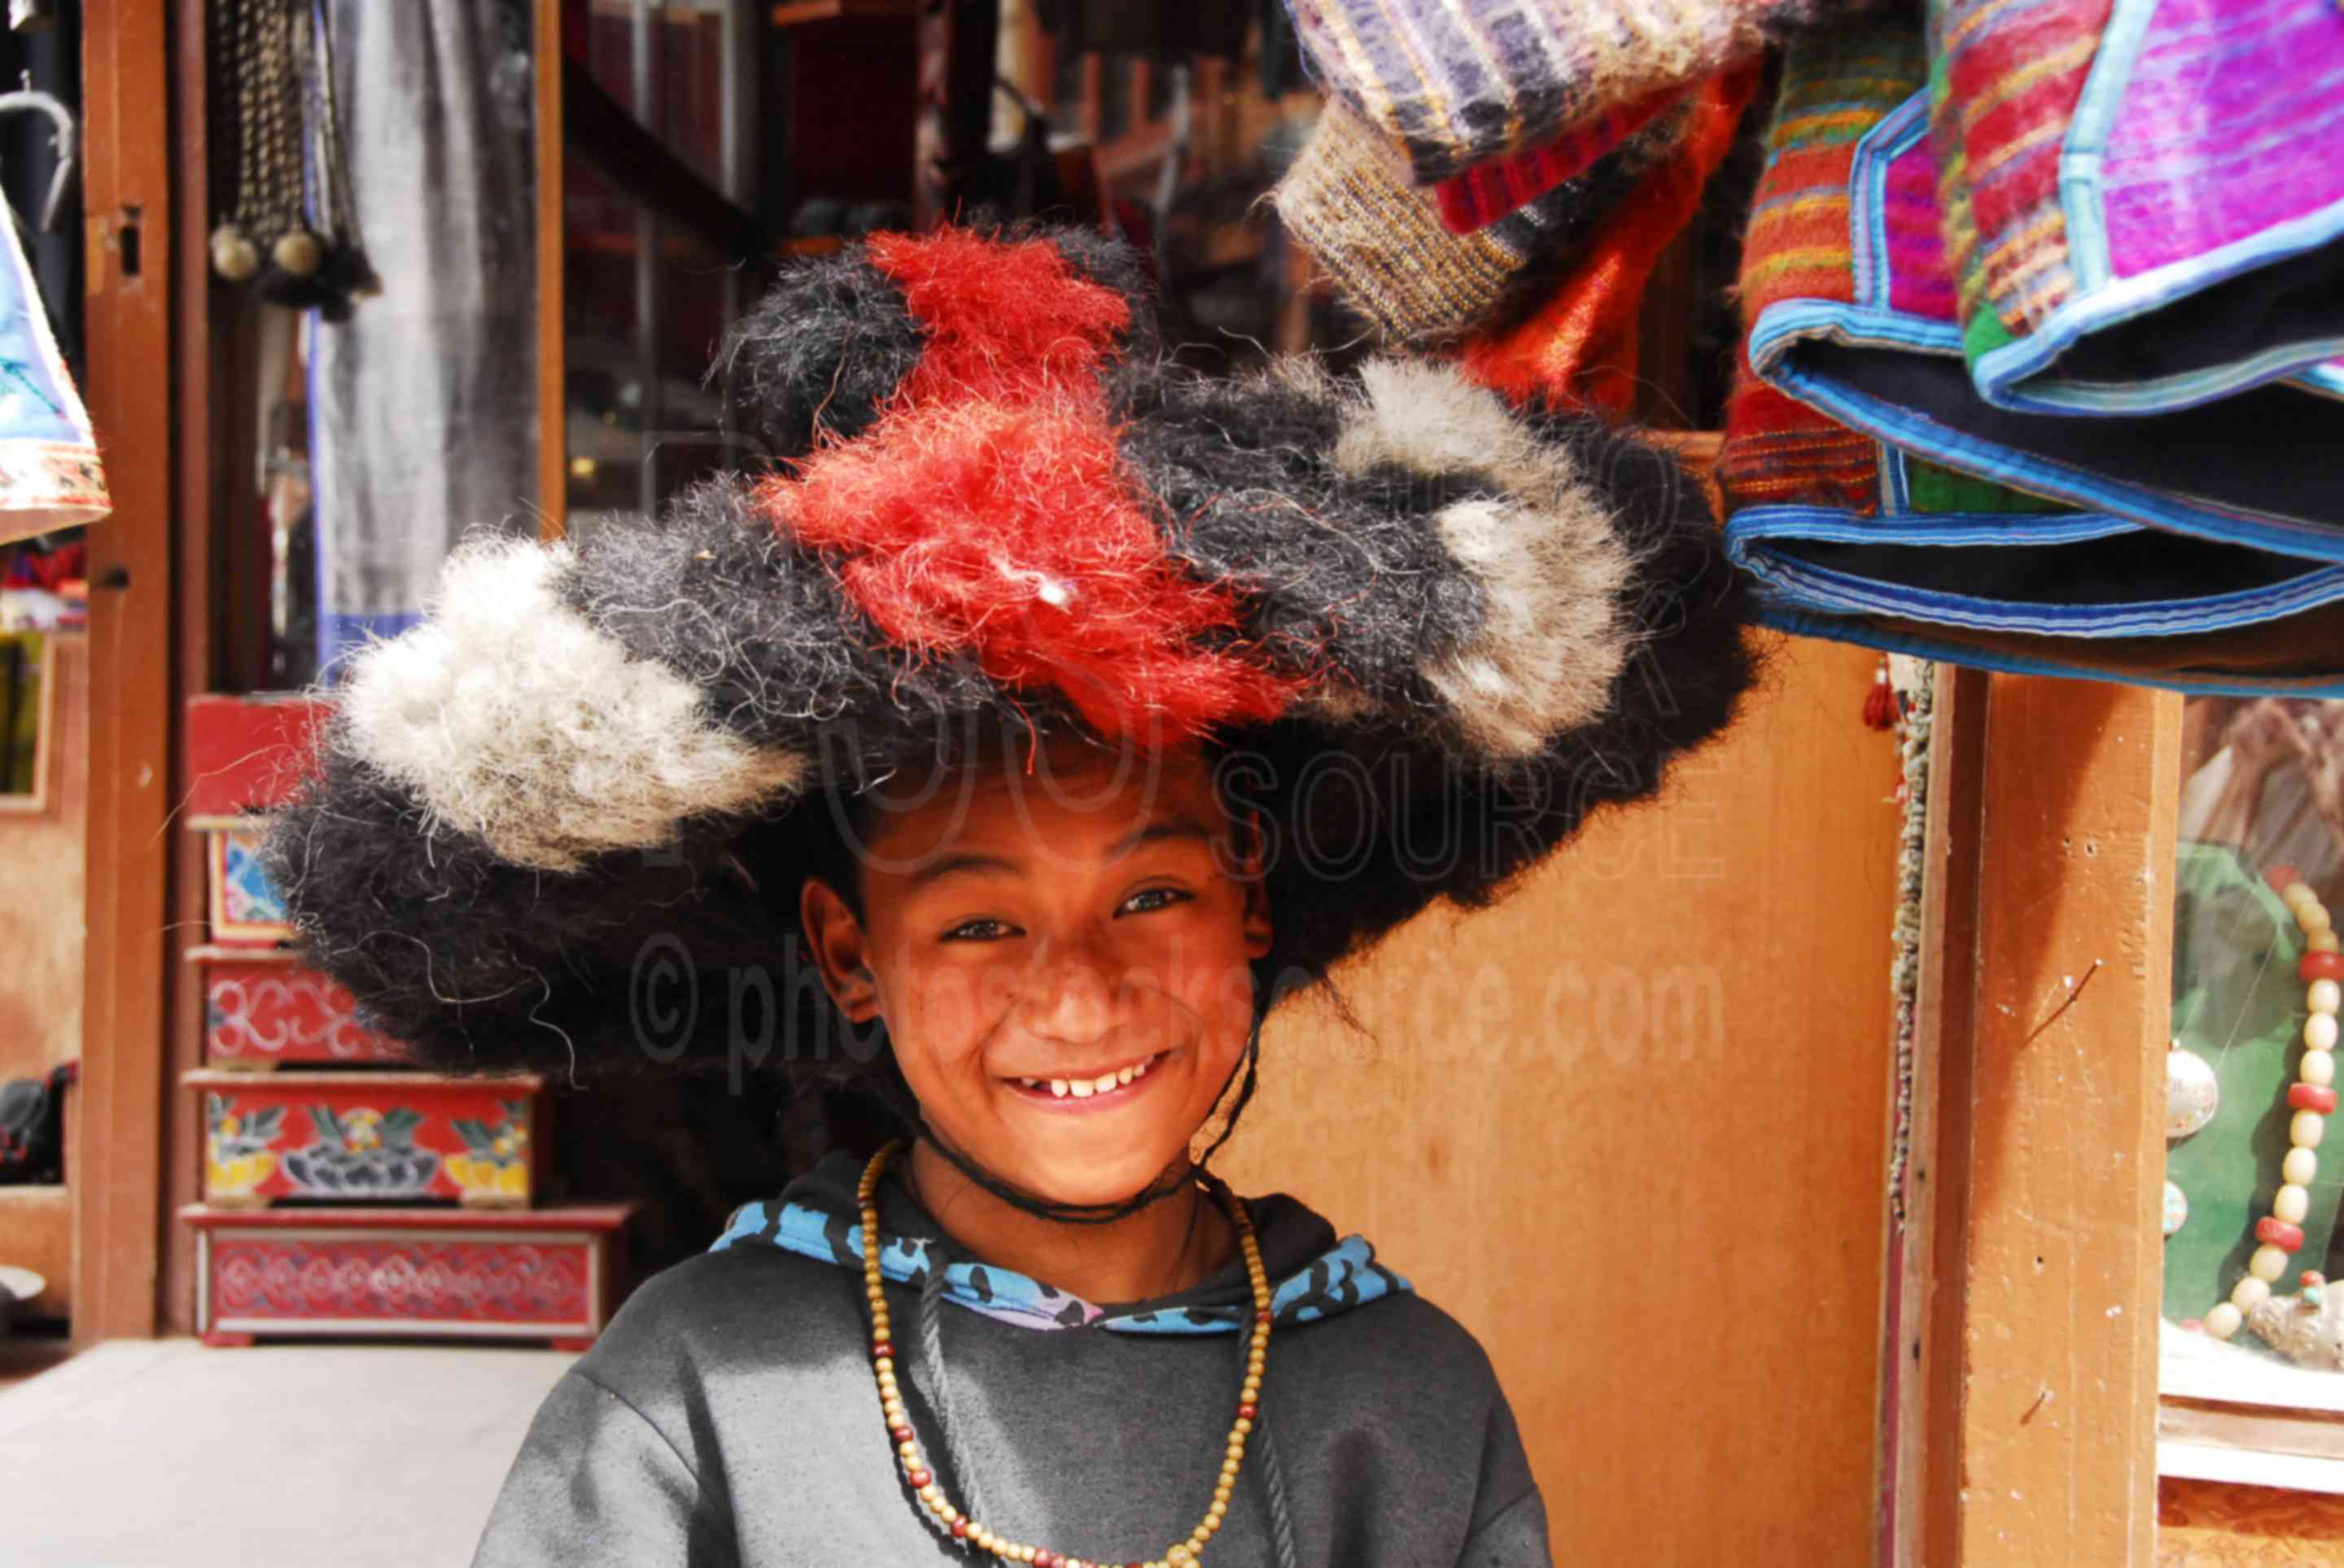 Tibetan Boy in Yak Hat,bouddhanath,bodhnath,baudhanath,stupa,religious,temple,people,boy,child,temples